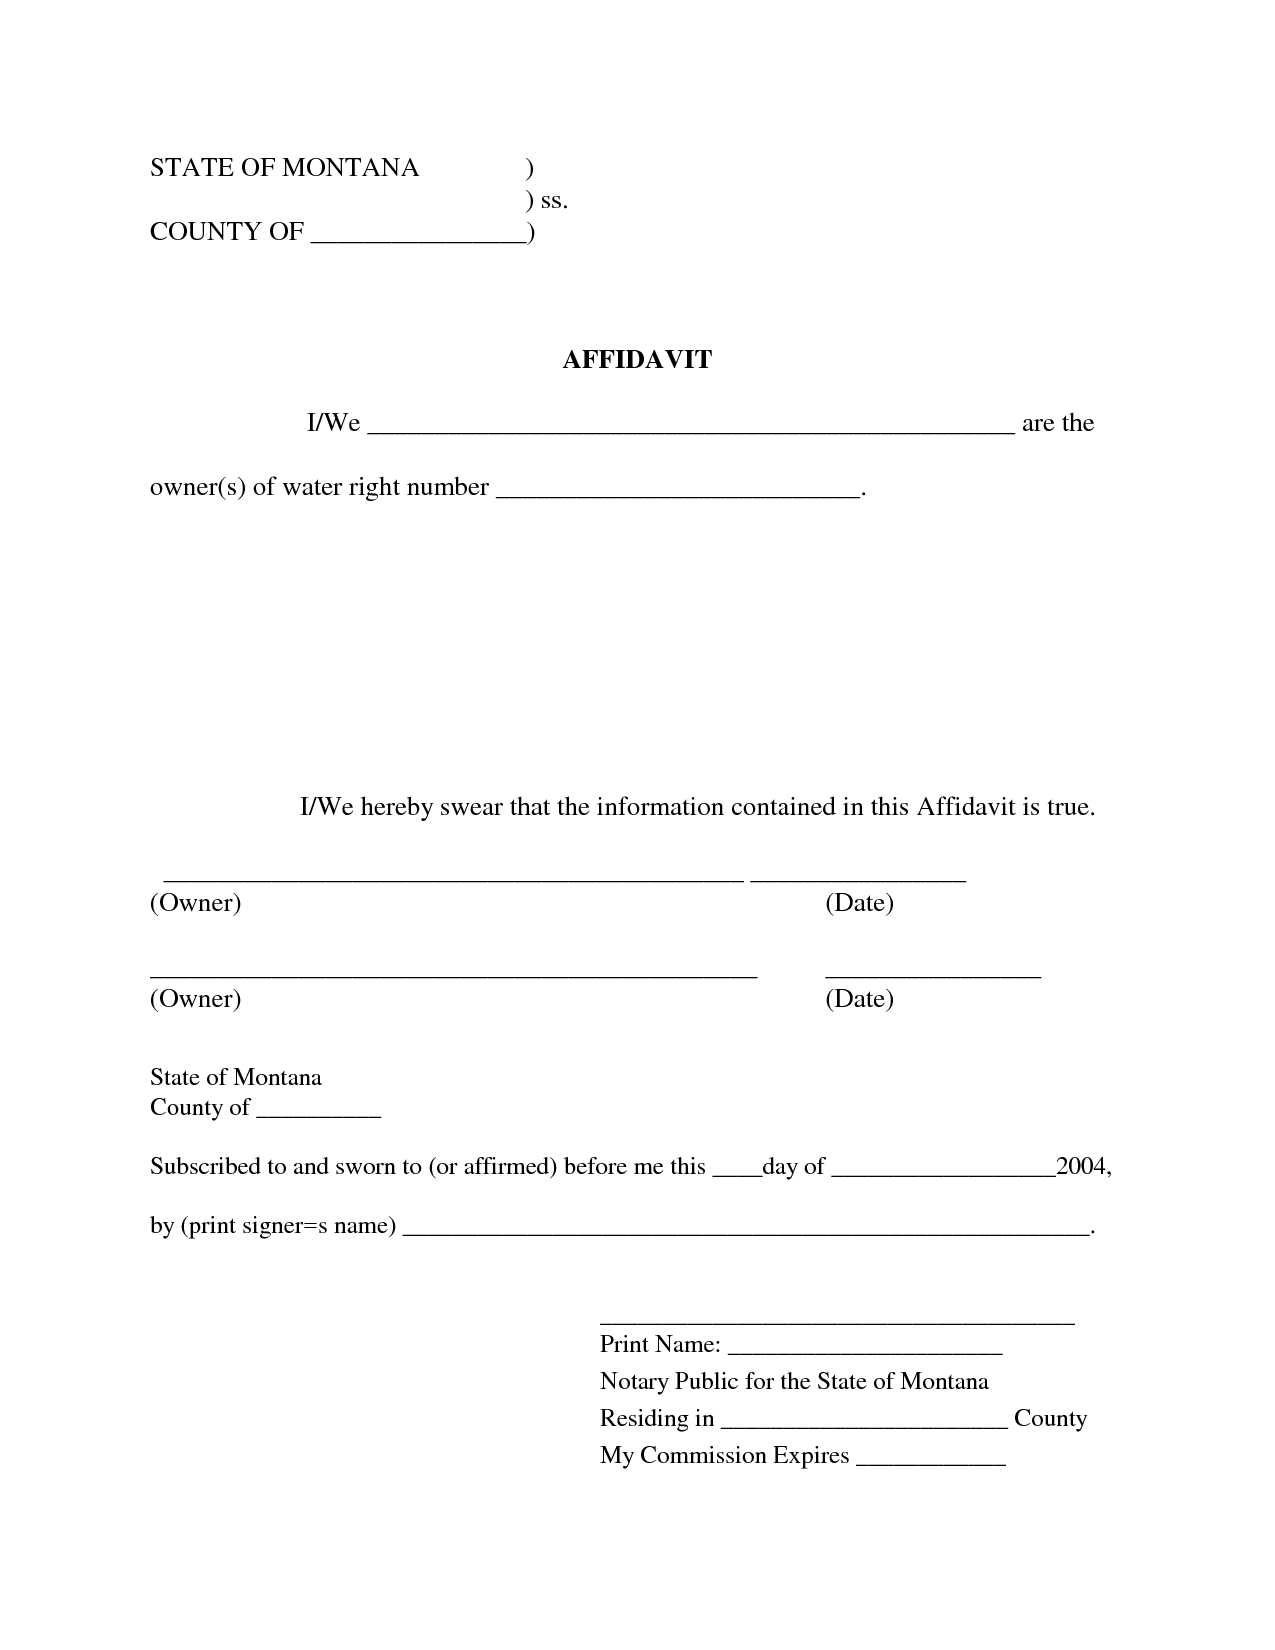 Sample Blank Affidavit Form 6 Documents In Pdf 78 Template Resume Template  Doc   Billybullock.  Affidavit Word Template